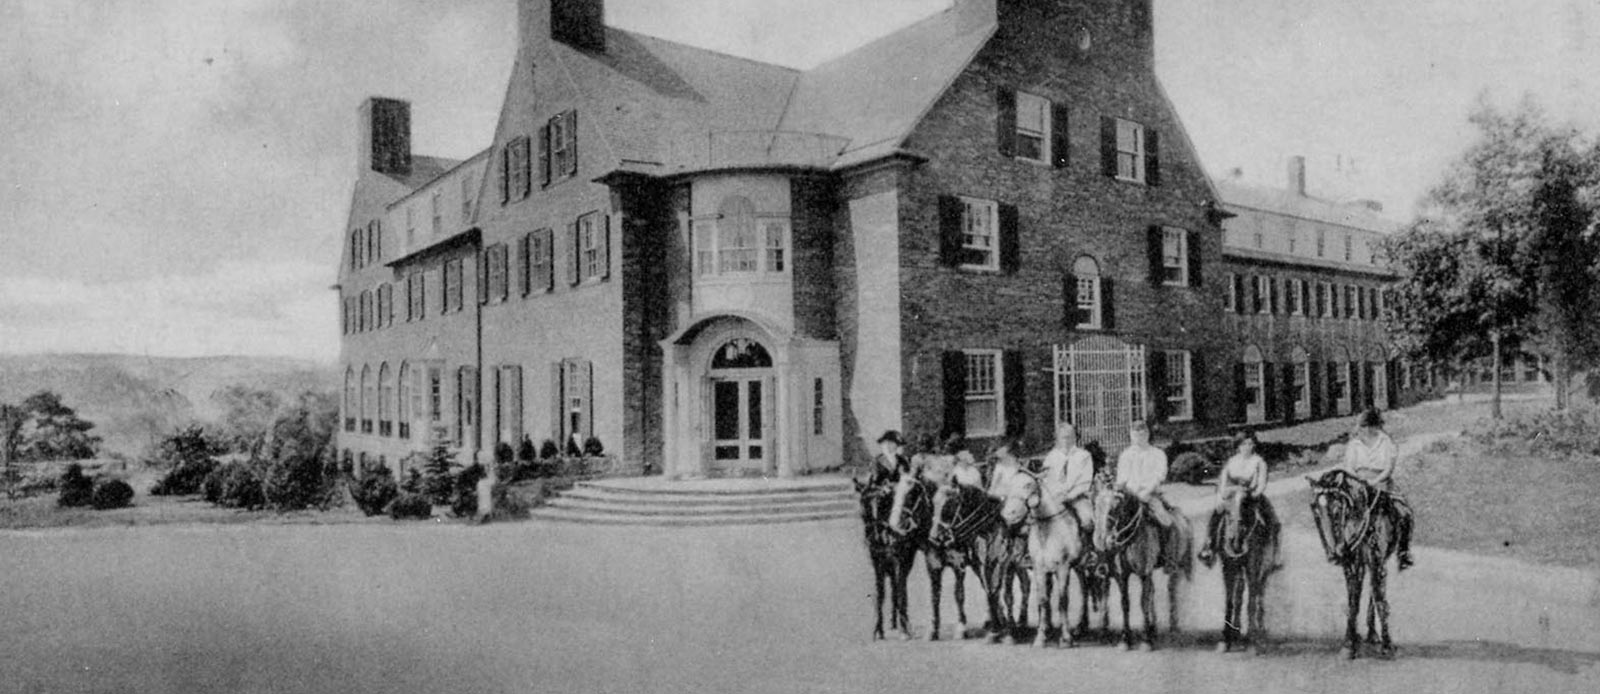 Historic Image of Hotel Exterior The Spa at Norwich Inn, 1929, Member of Historic Hotels of America, in Norwich, Connecticut, Discover